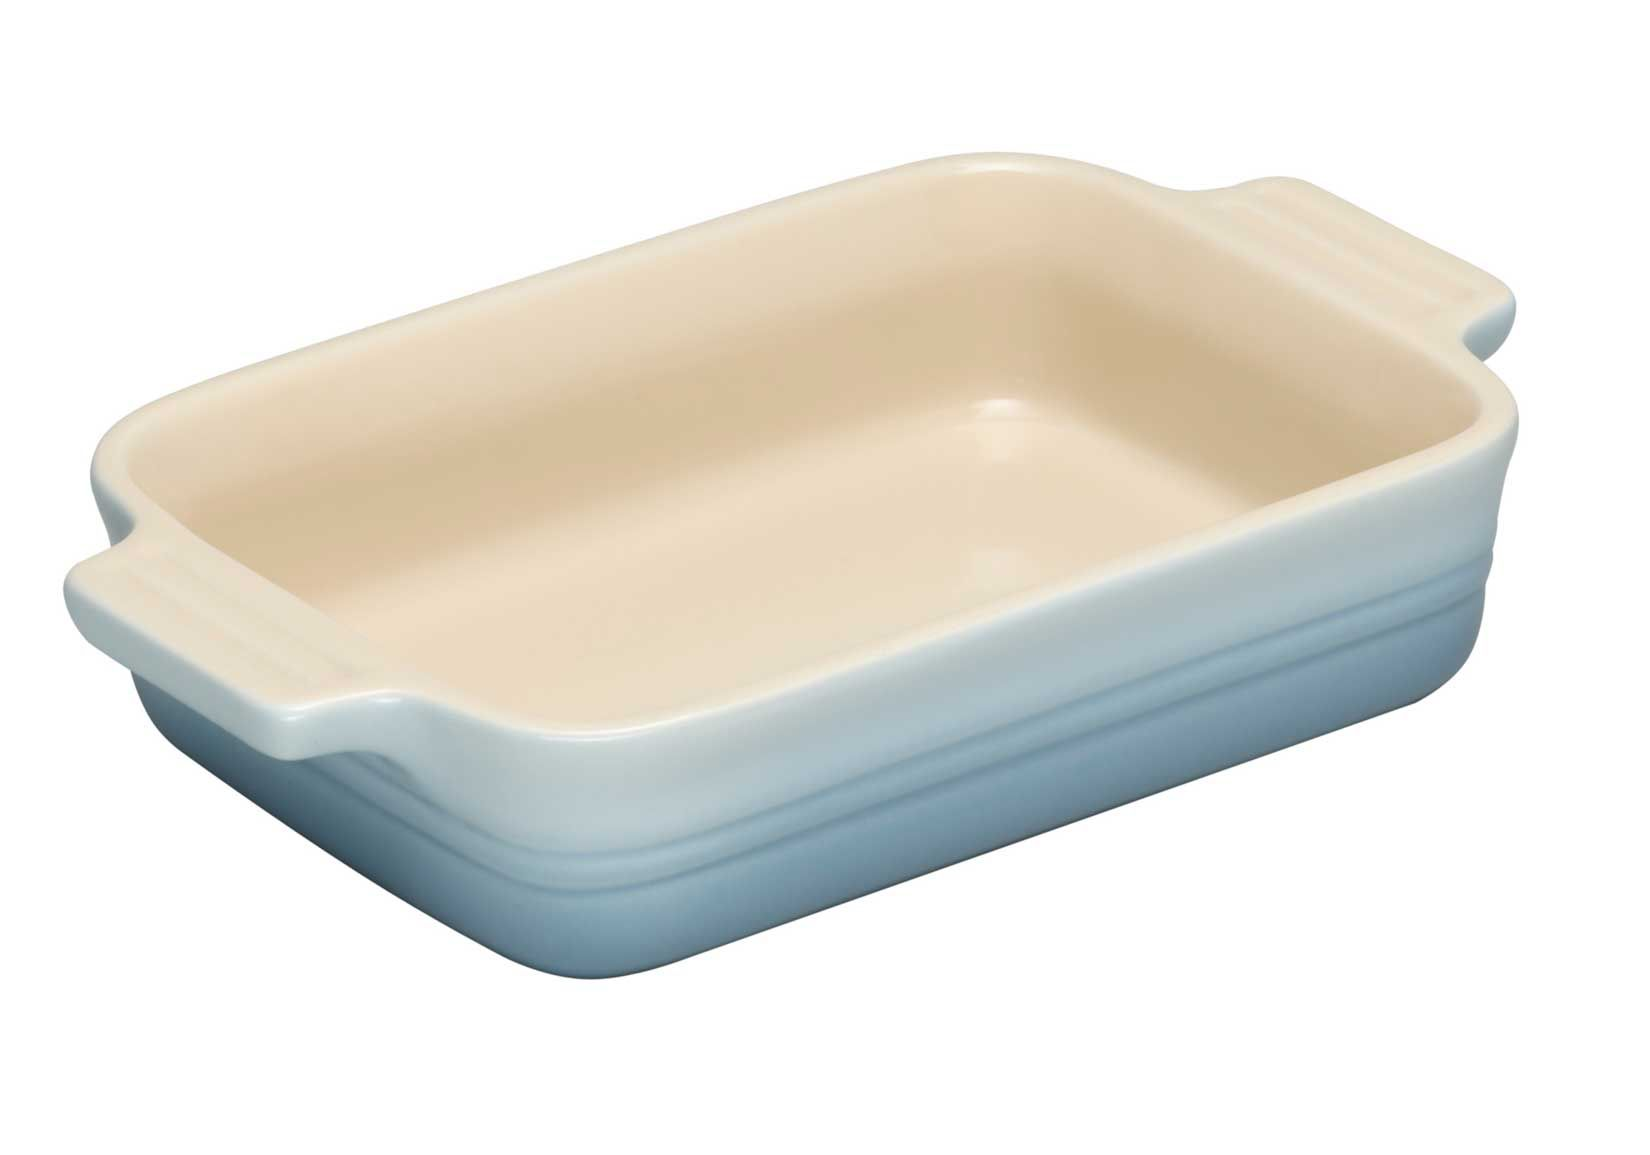 Rectangular dish, Coastal Blue, 26cm